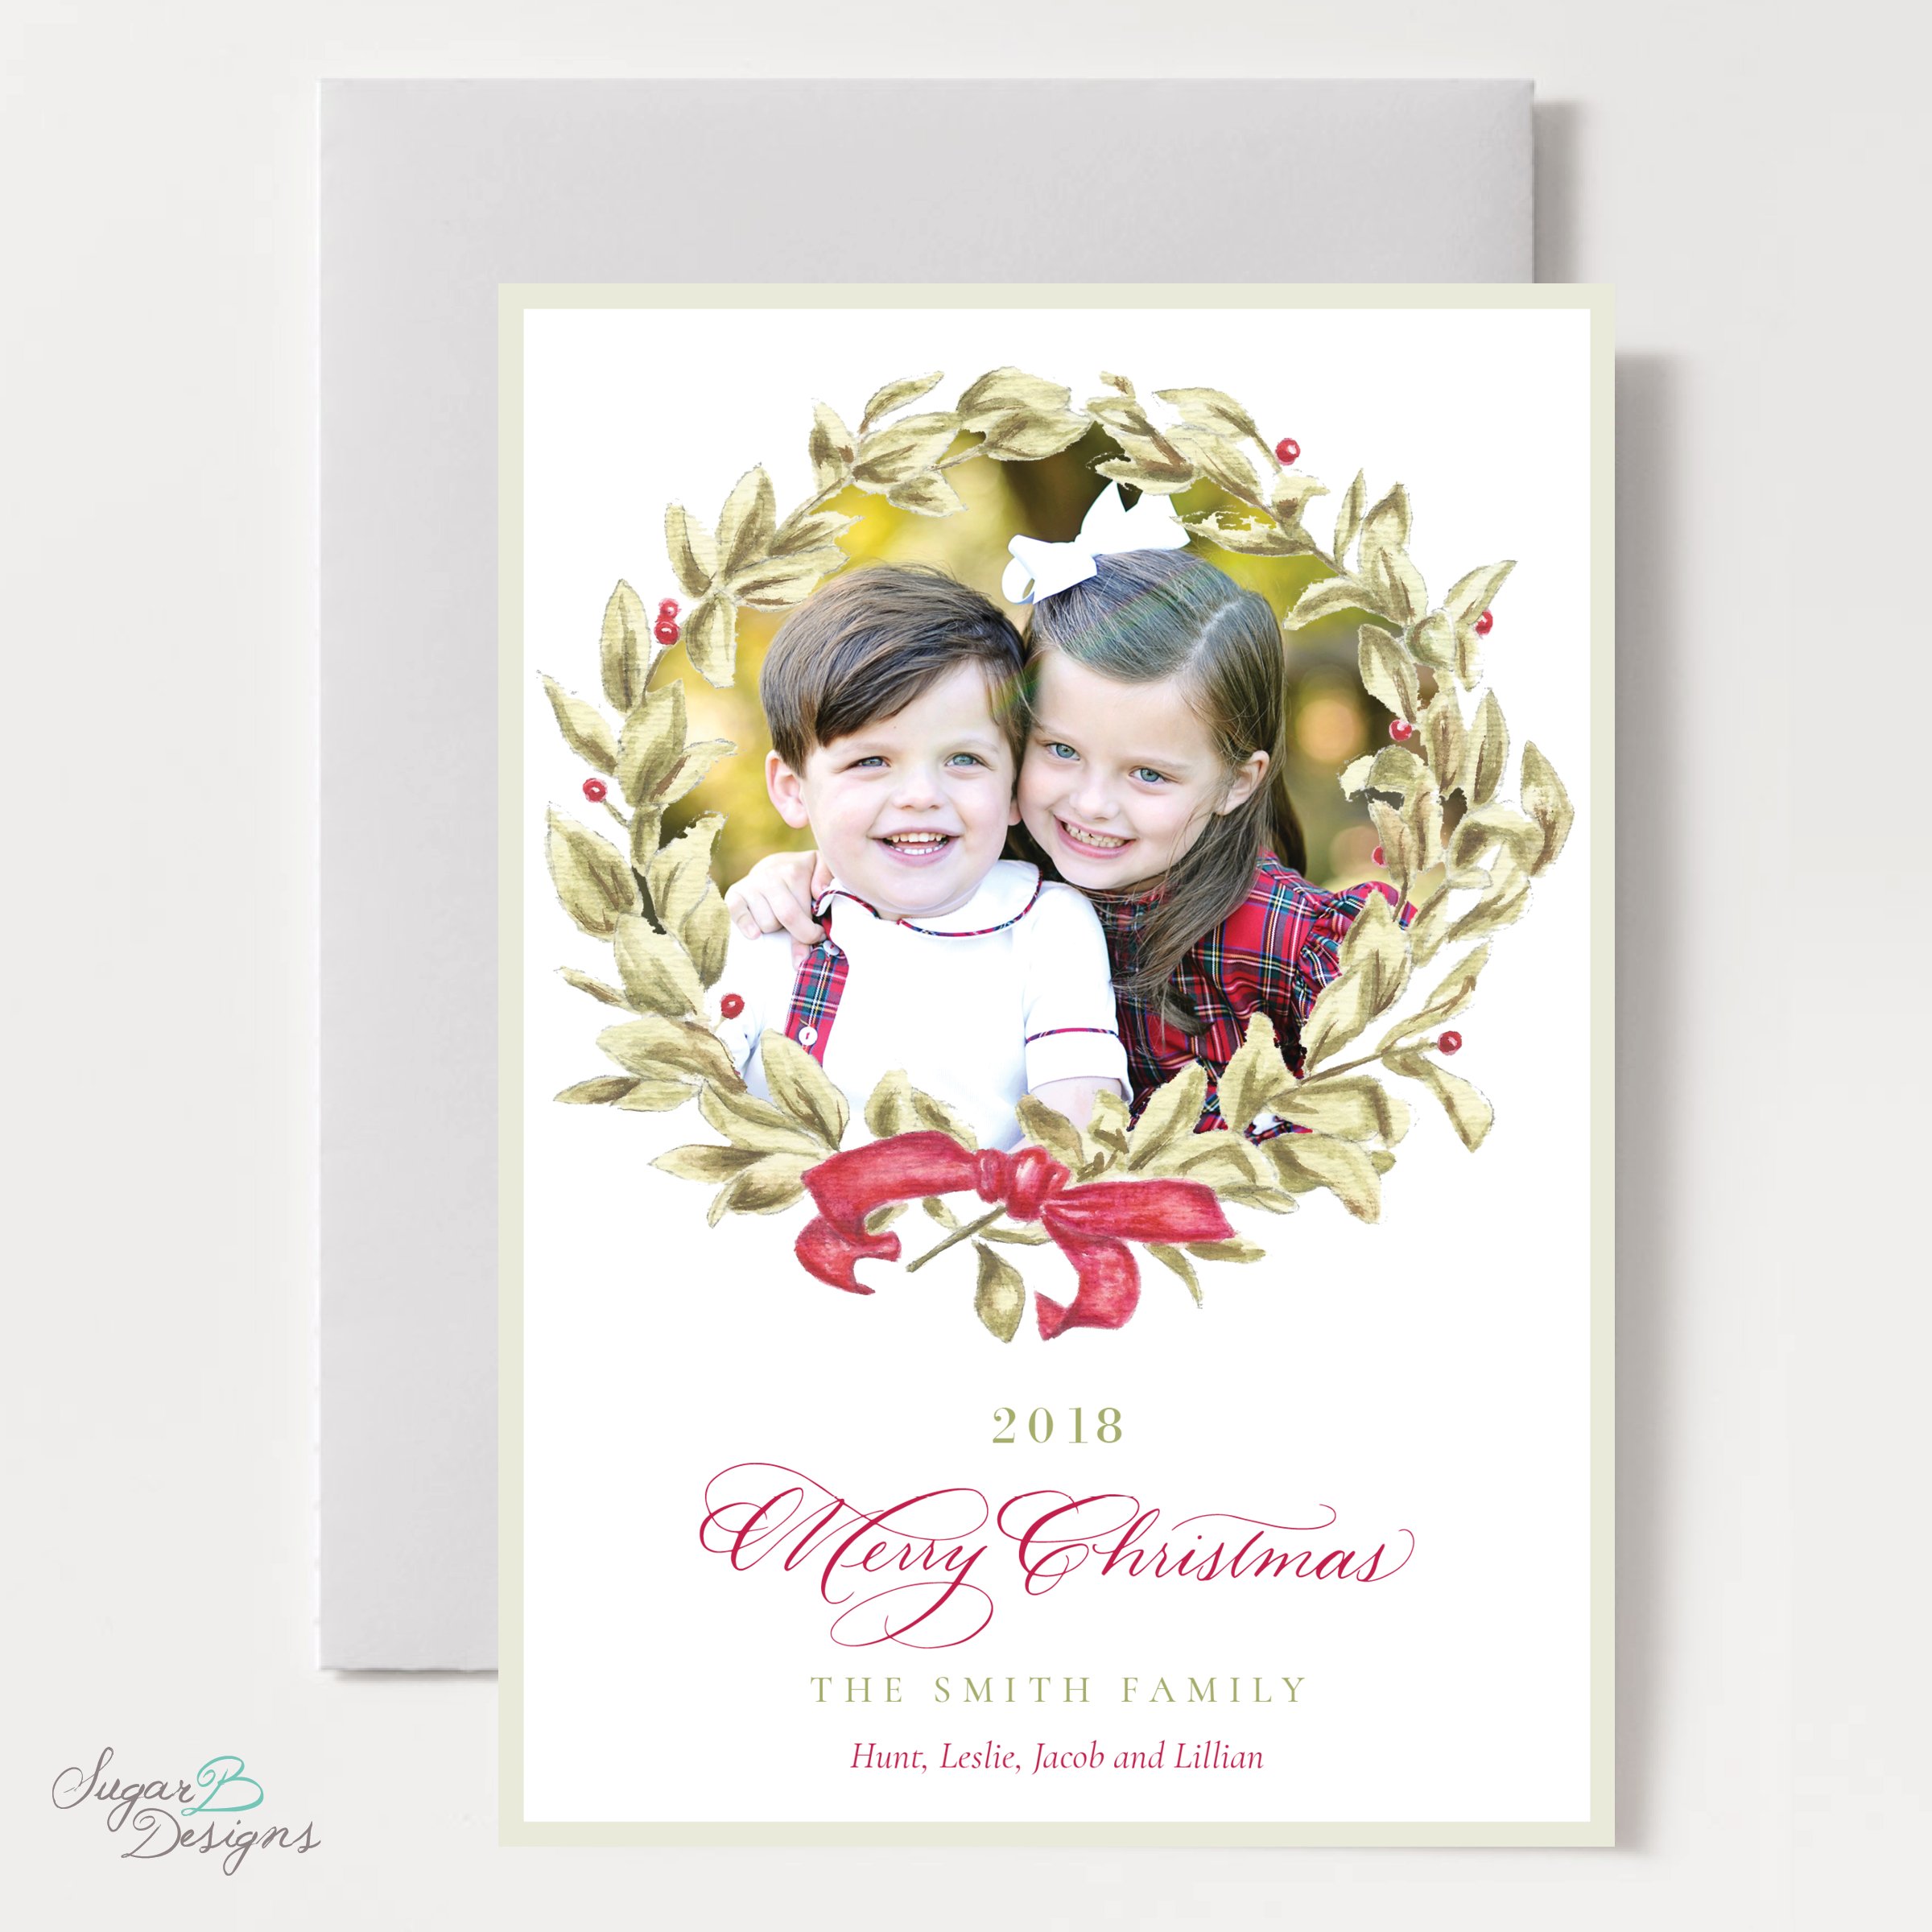 Meryl Wreath Red Moving Christmas Card front by Sugar B Designs.png